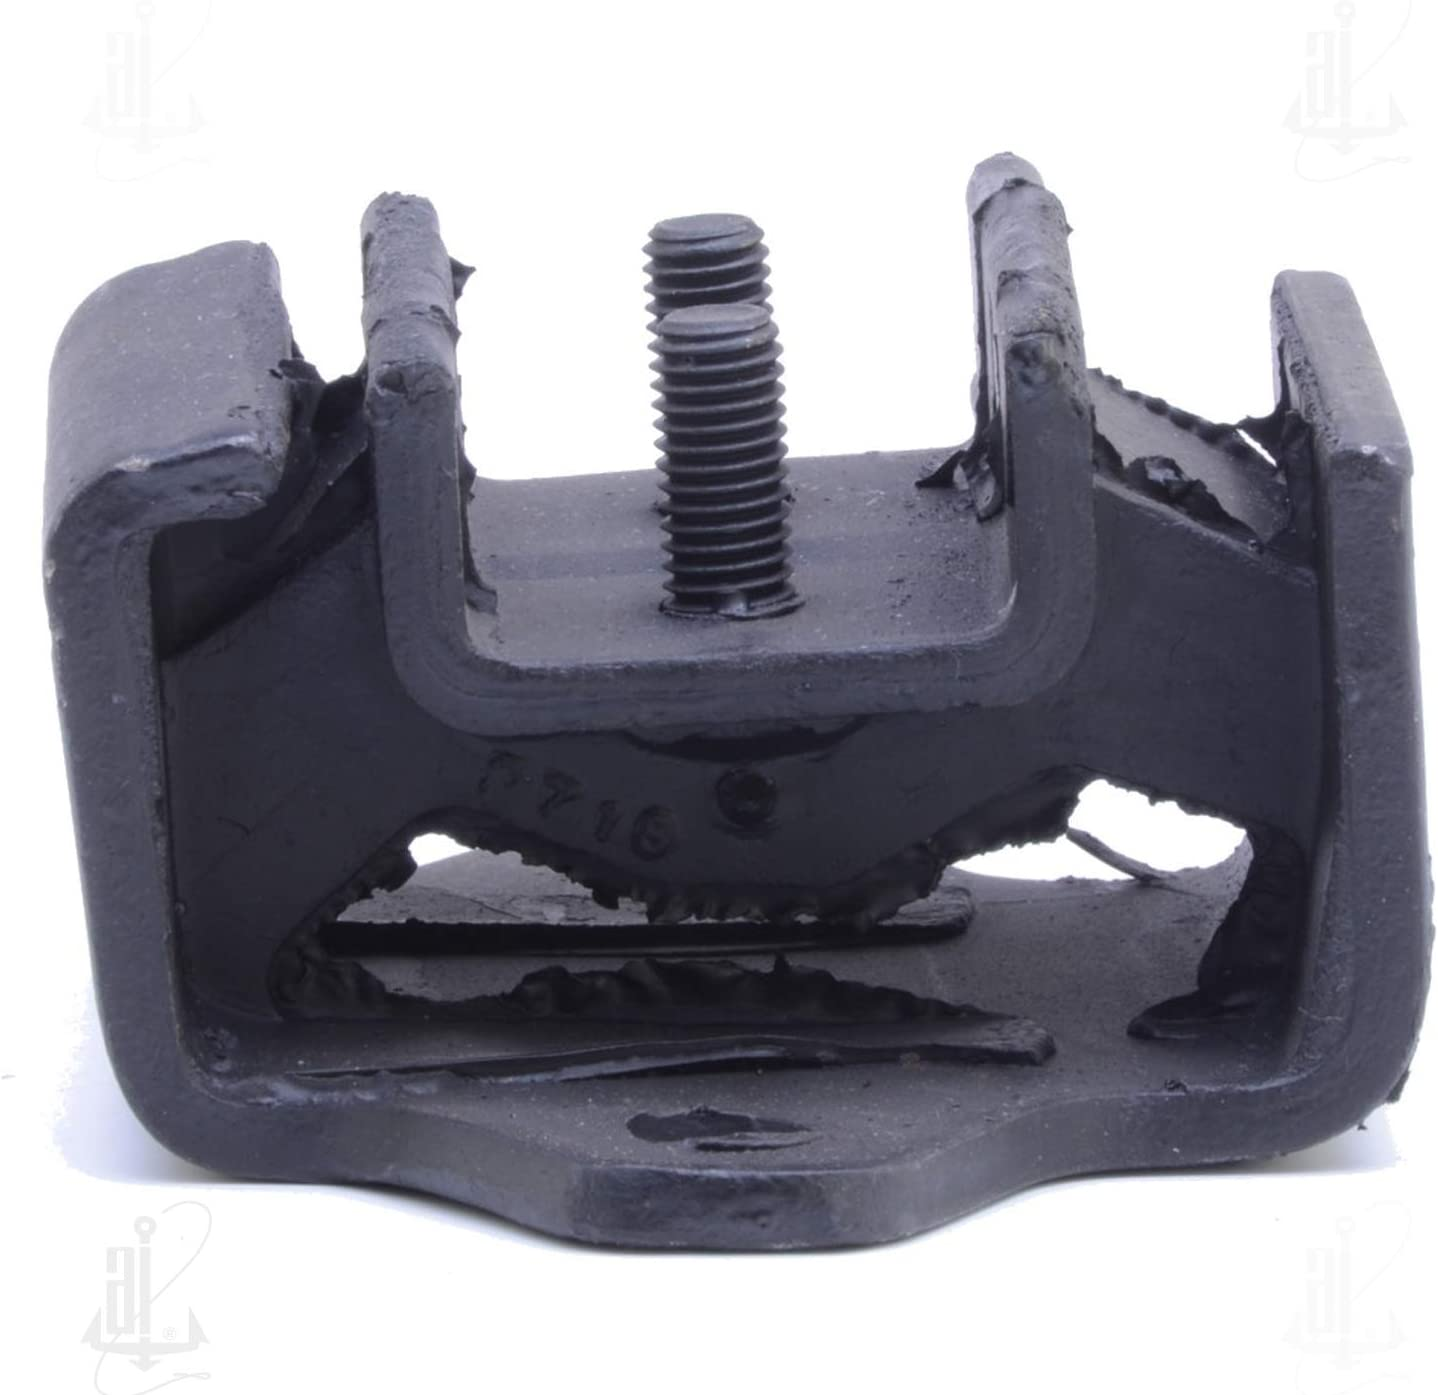 Anchor 2719 Mount Transmission Max 42% ! Super beauty product restock quality top! OFF